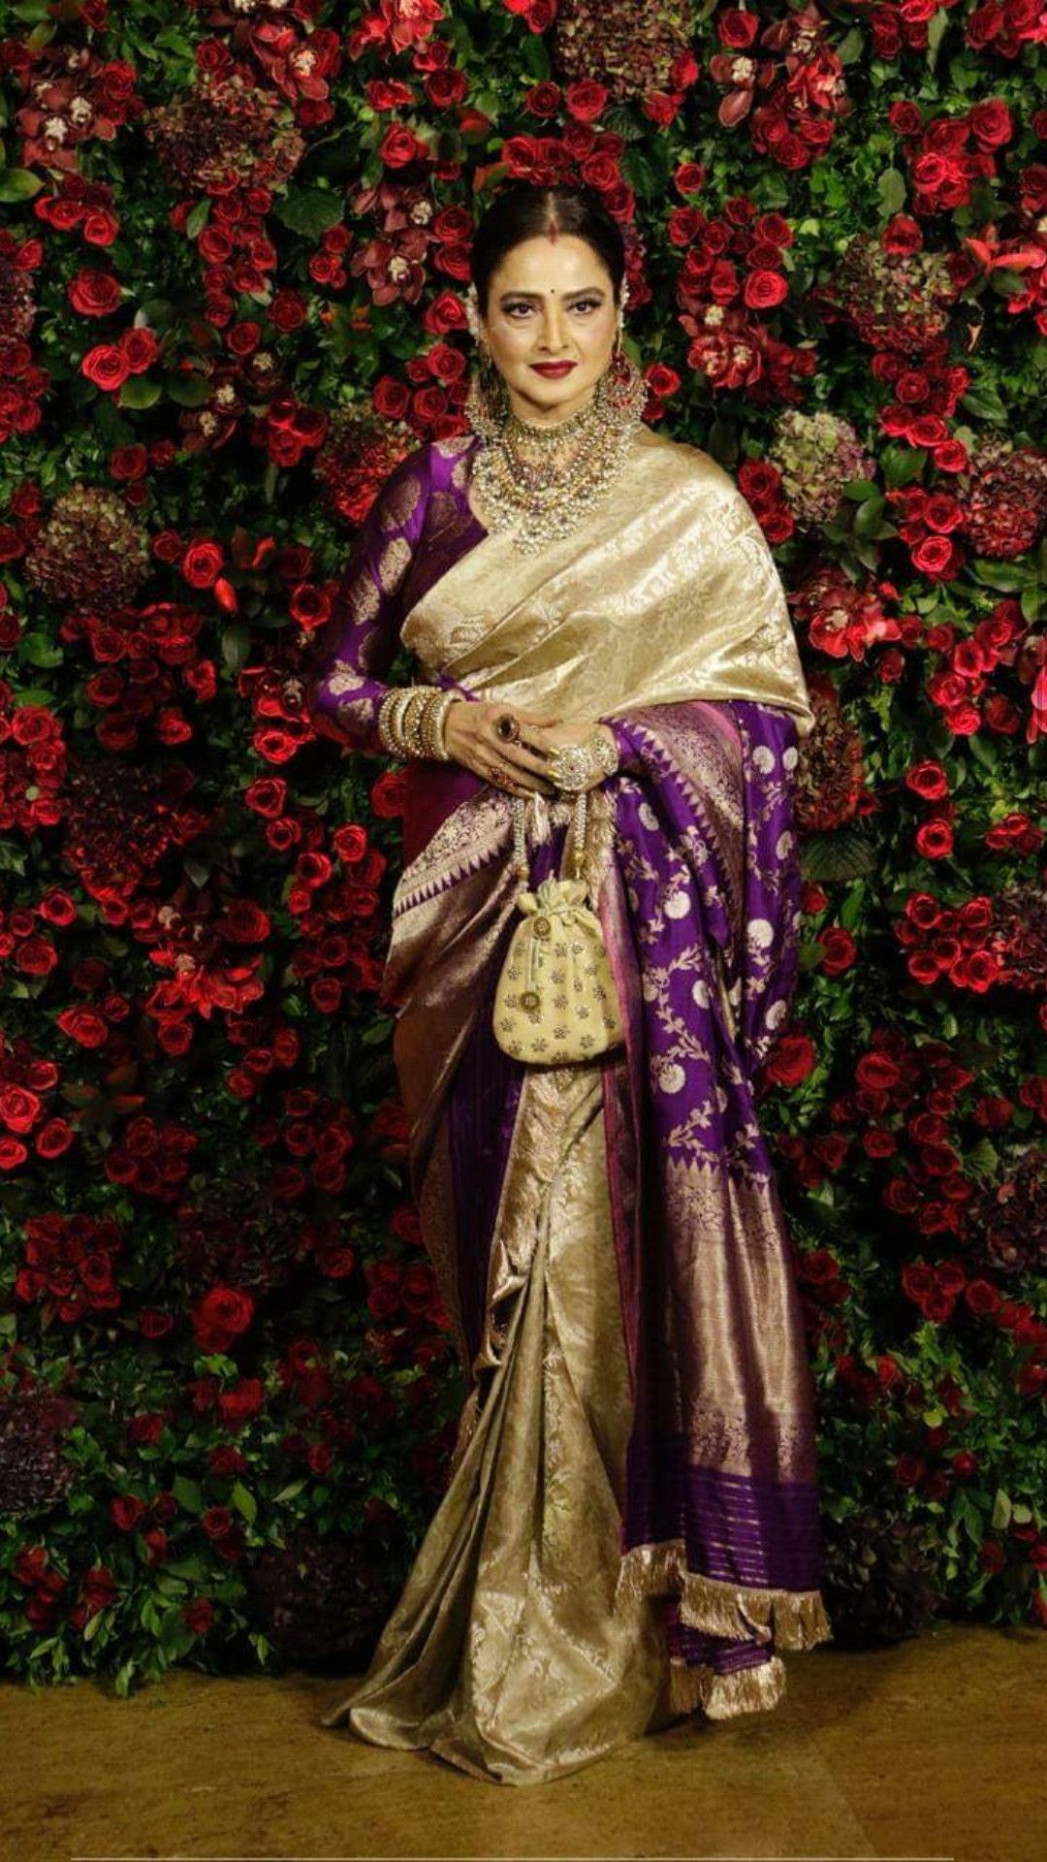 Rekha @ deepveer's  Saree designs, Rekha saree, Silk